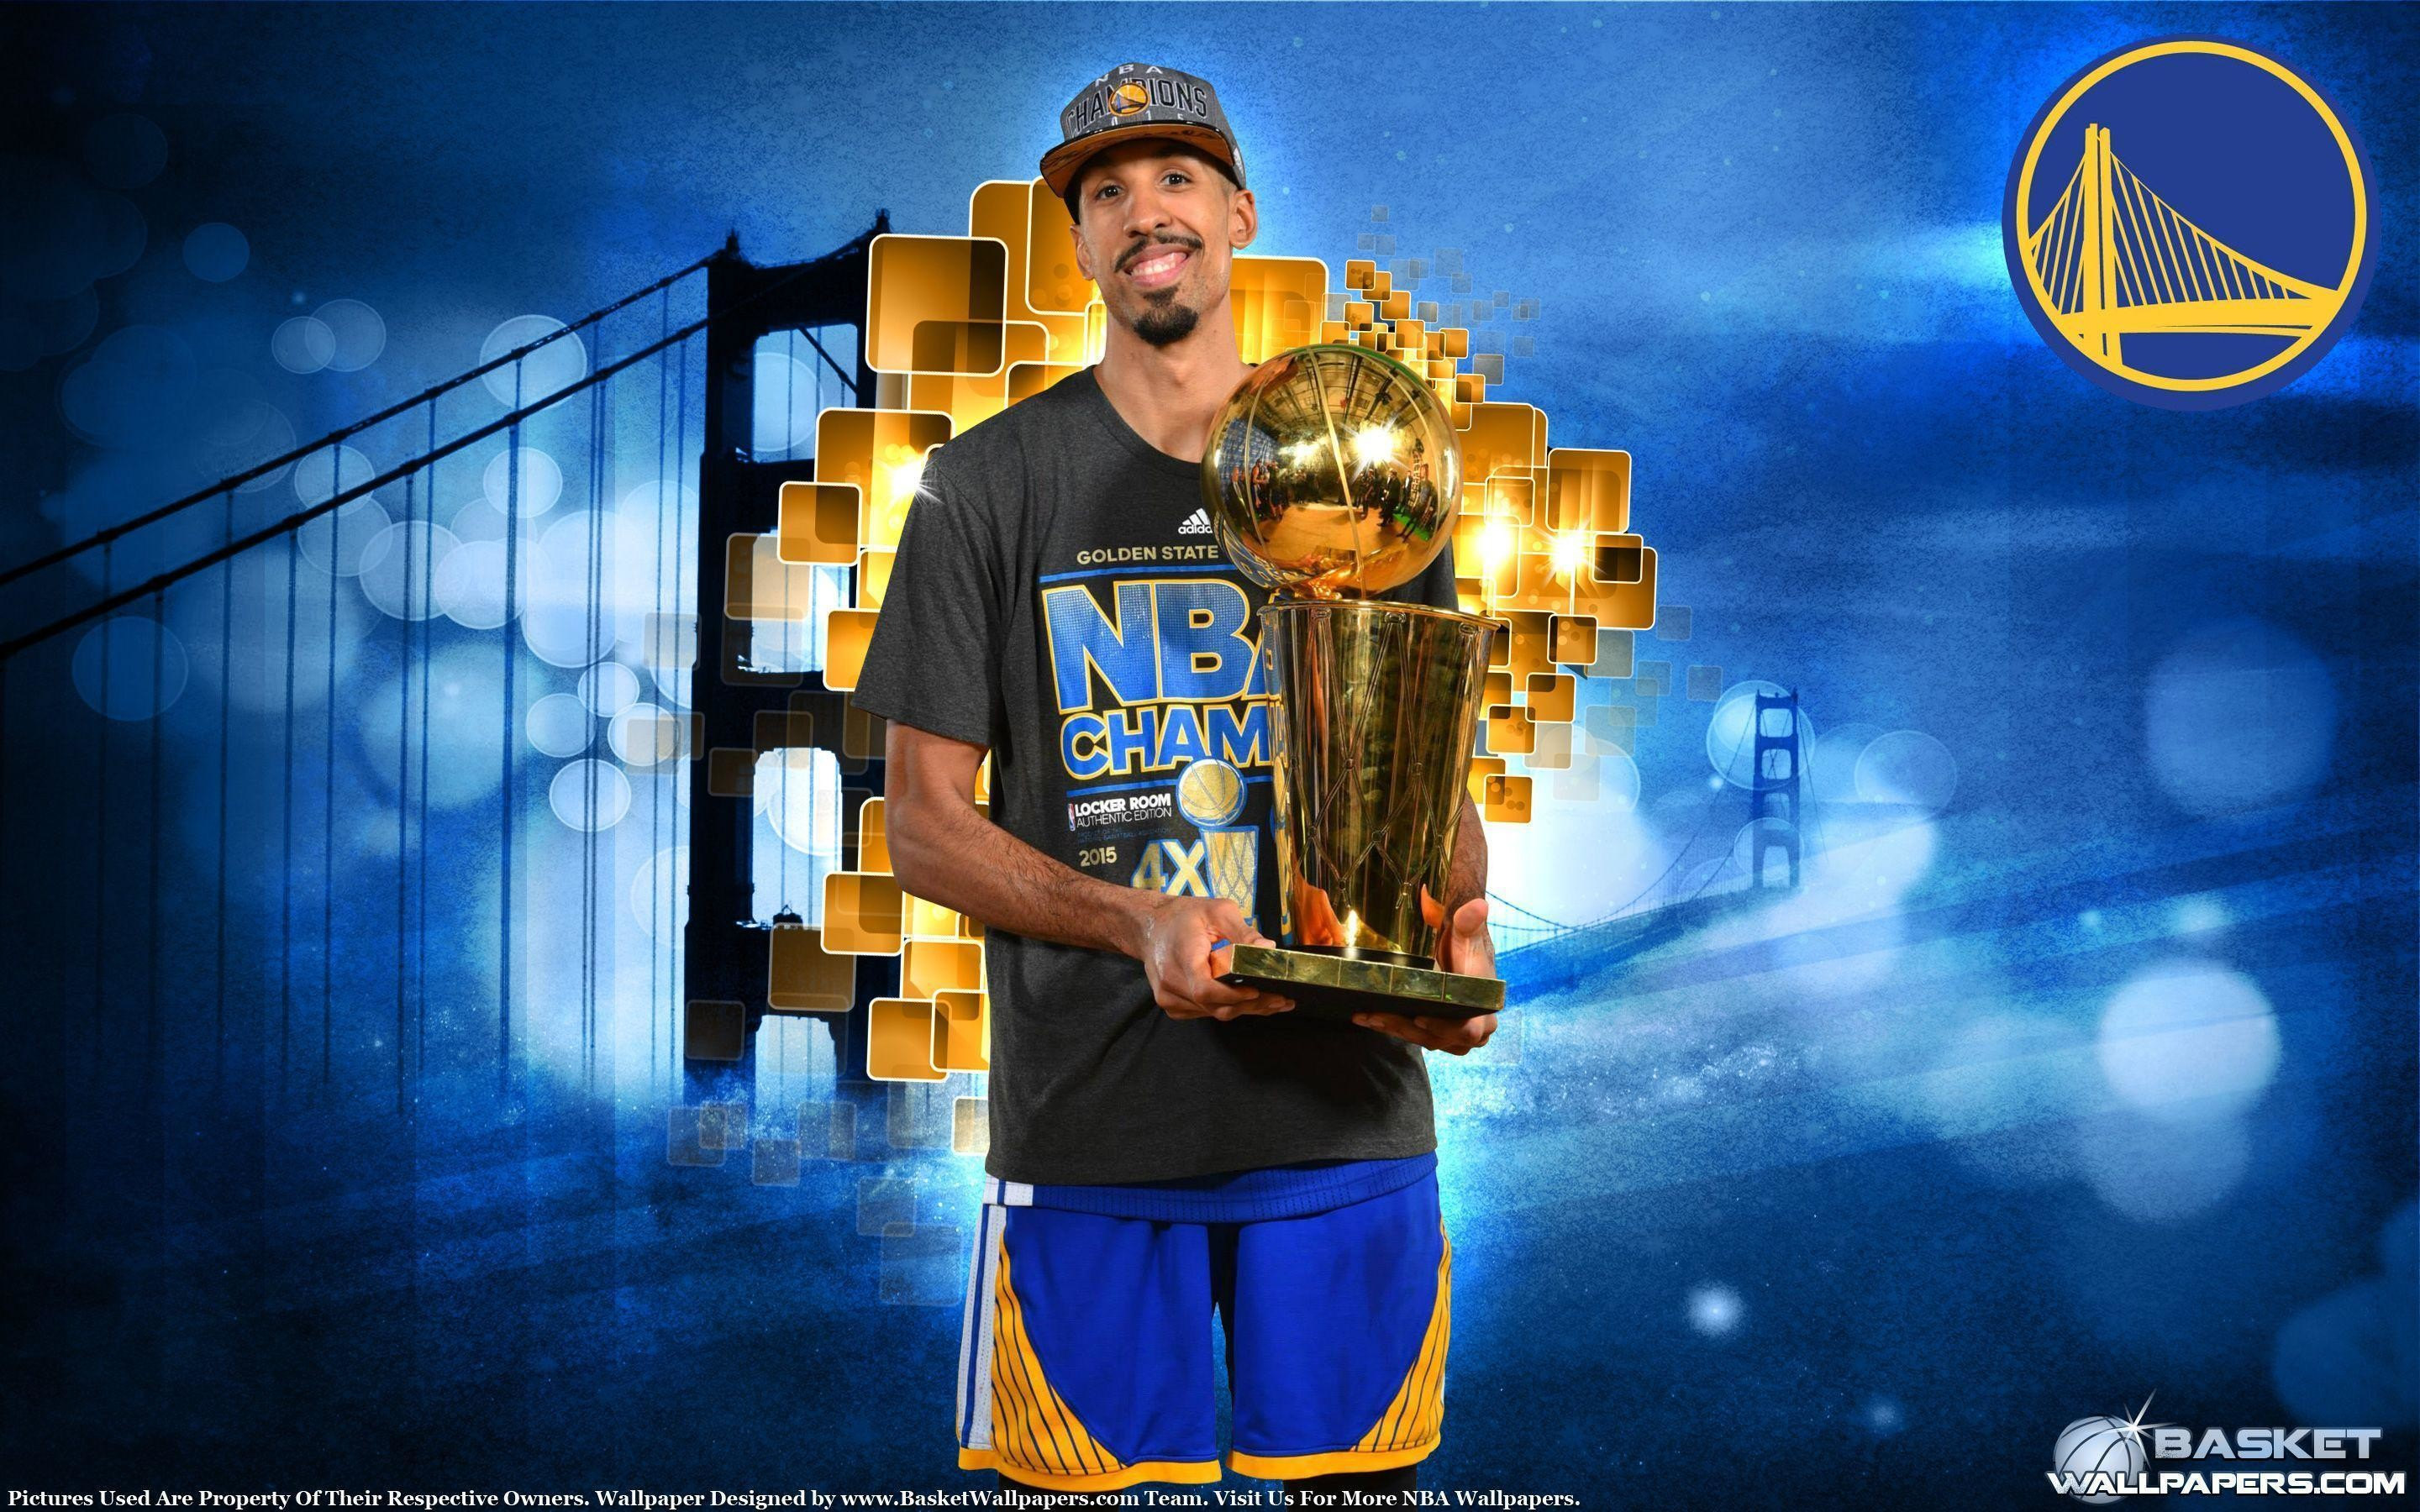 Golden State Warriors Wallpapers   Basketball Wallpapers at .